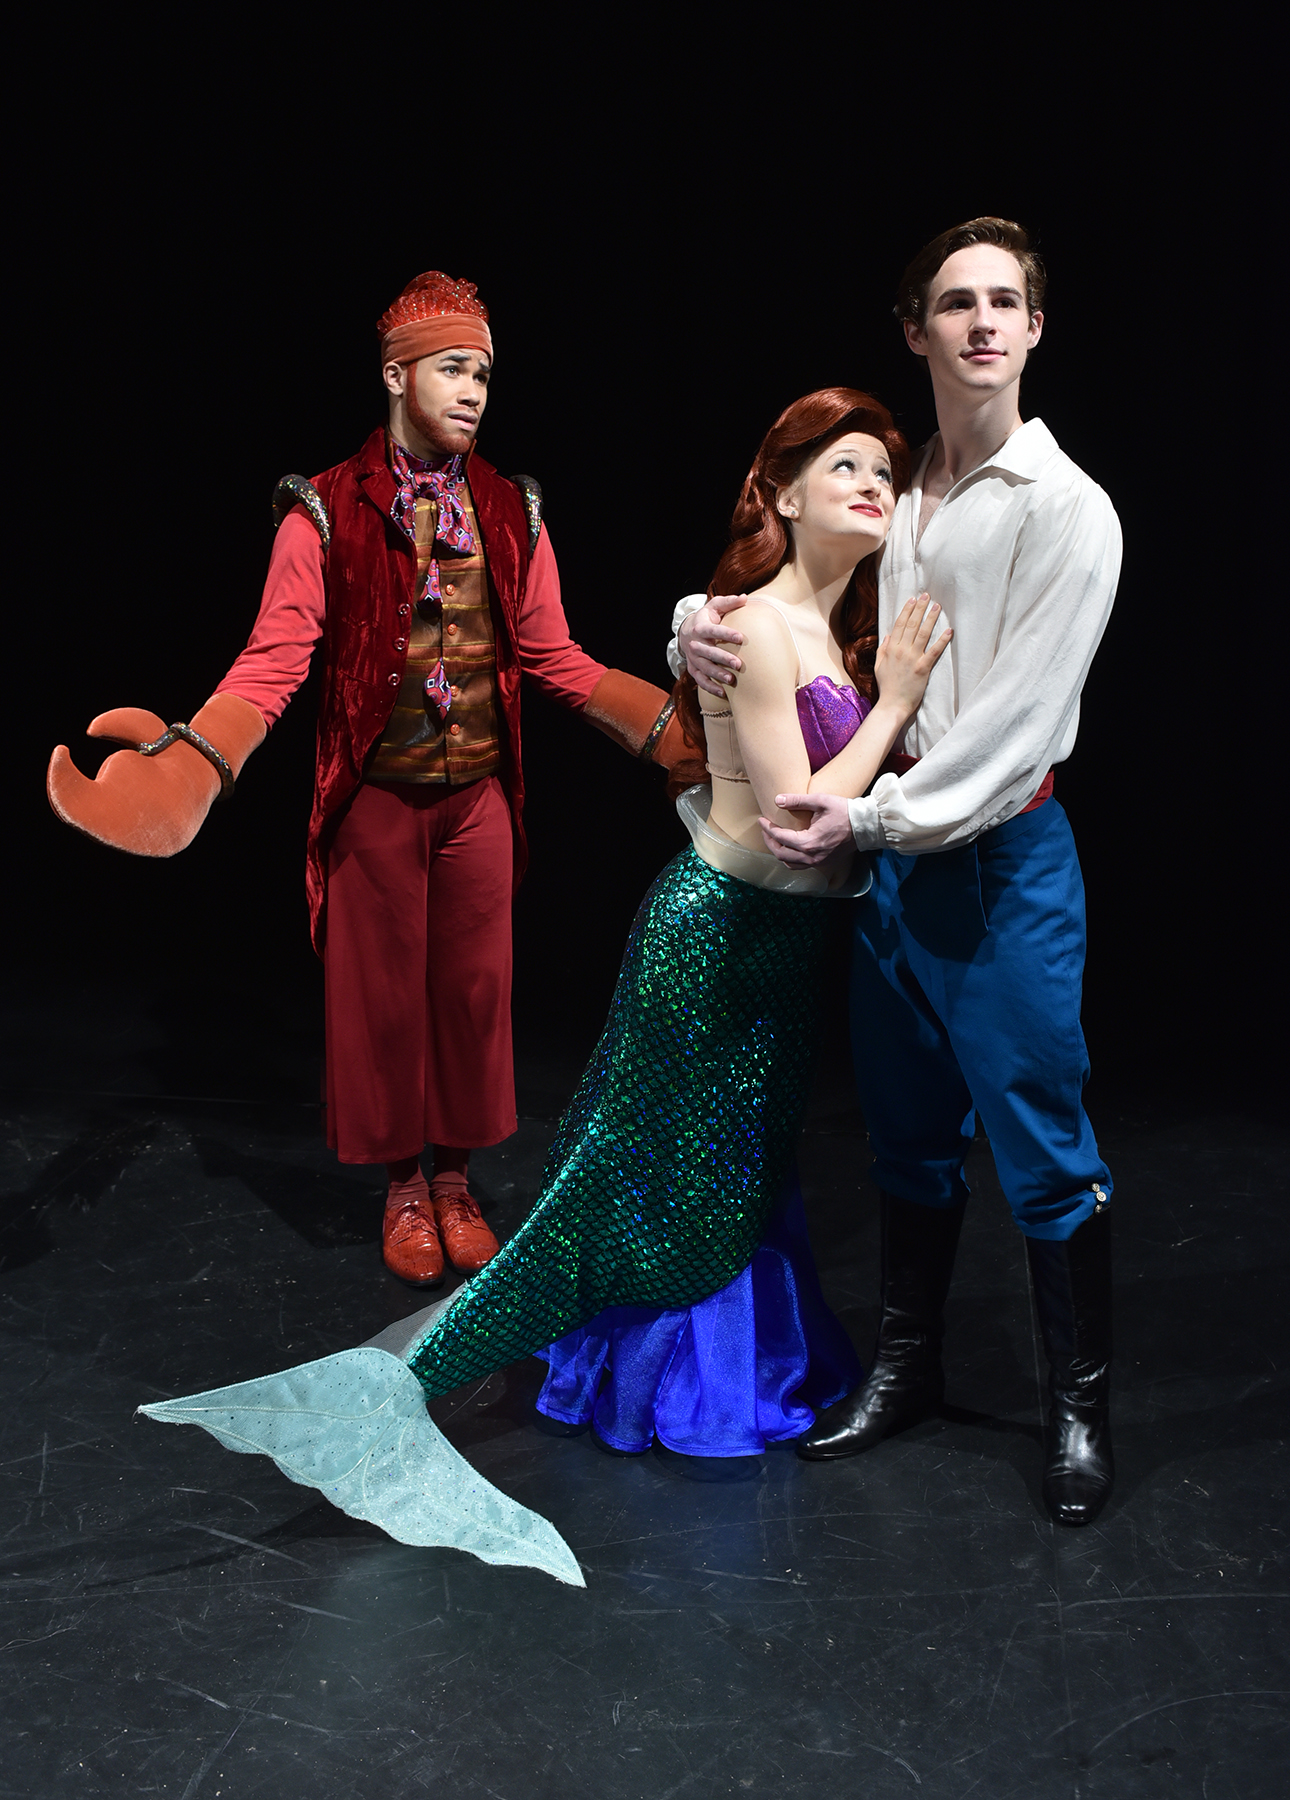 ... on in disbelief at Ariel (Halli Toland) and Prince Eric (Trevor Carr) in the Department of Musical Theatreu0027s production of Disneyu0027s u201cThe Little Mermaid.  sc 1 st  Arts u0026 Culture - University of Michigan & The Department of Musical Theatre presents Disneyu0027s The Little ...